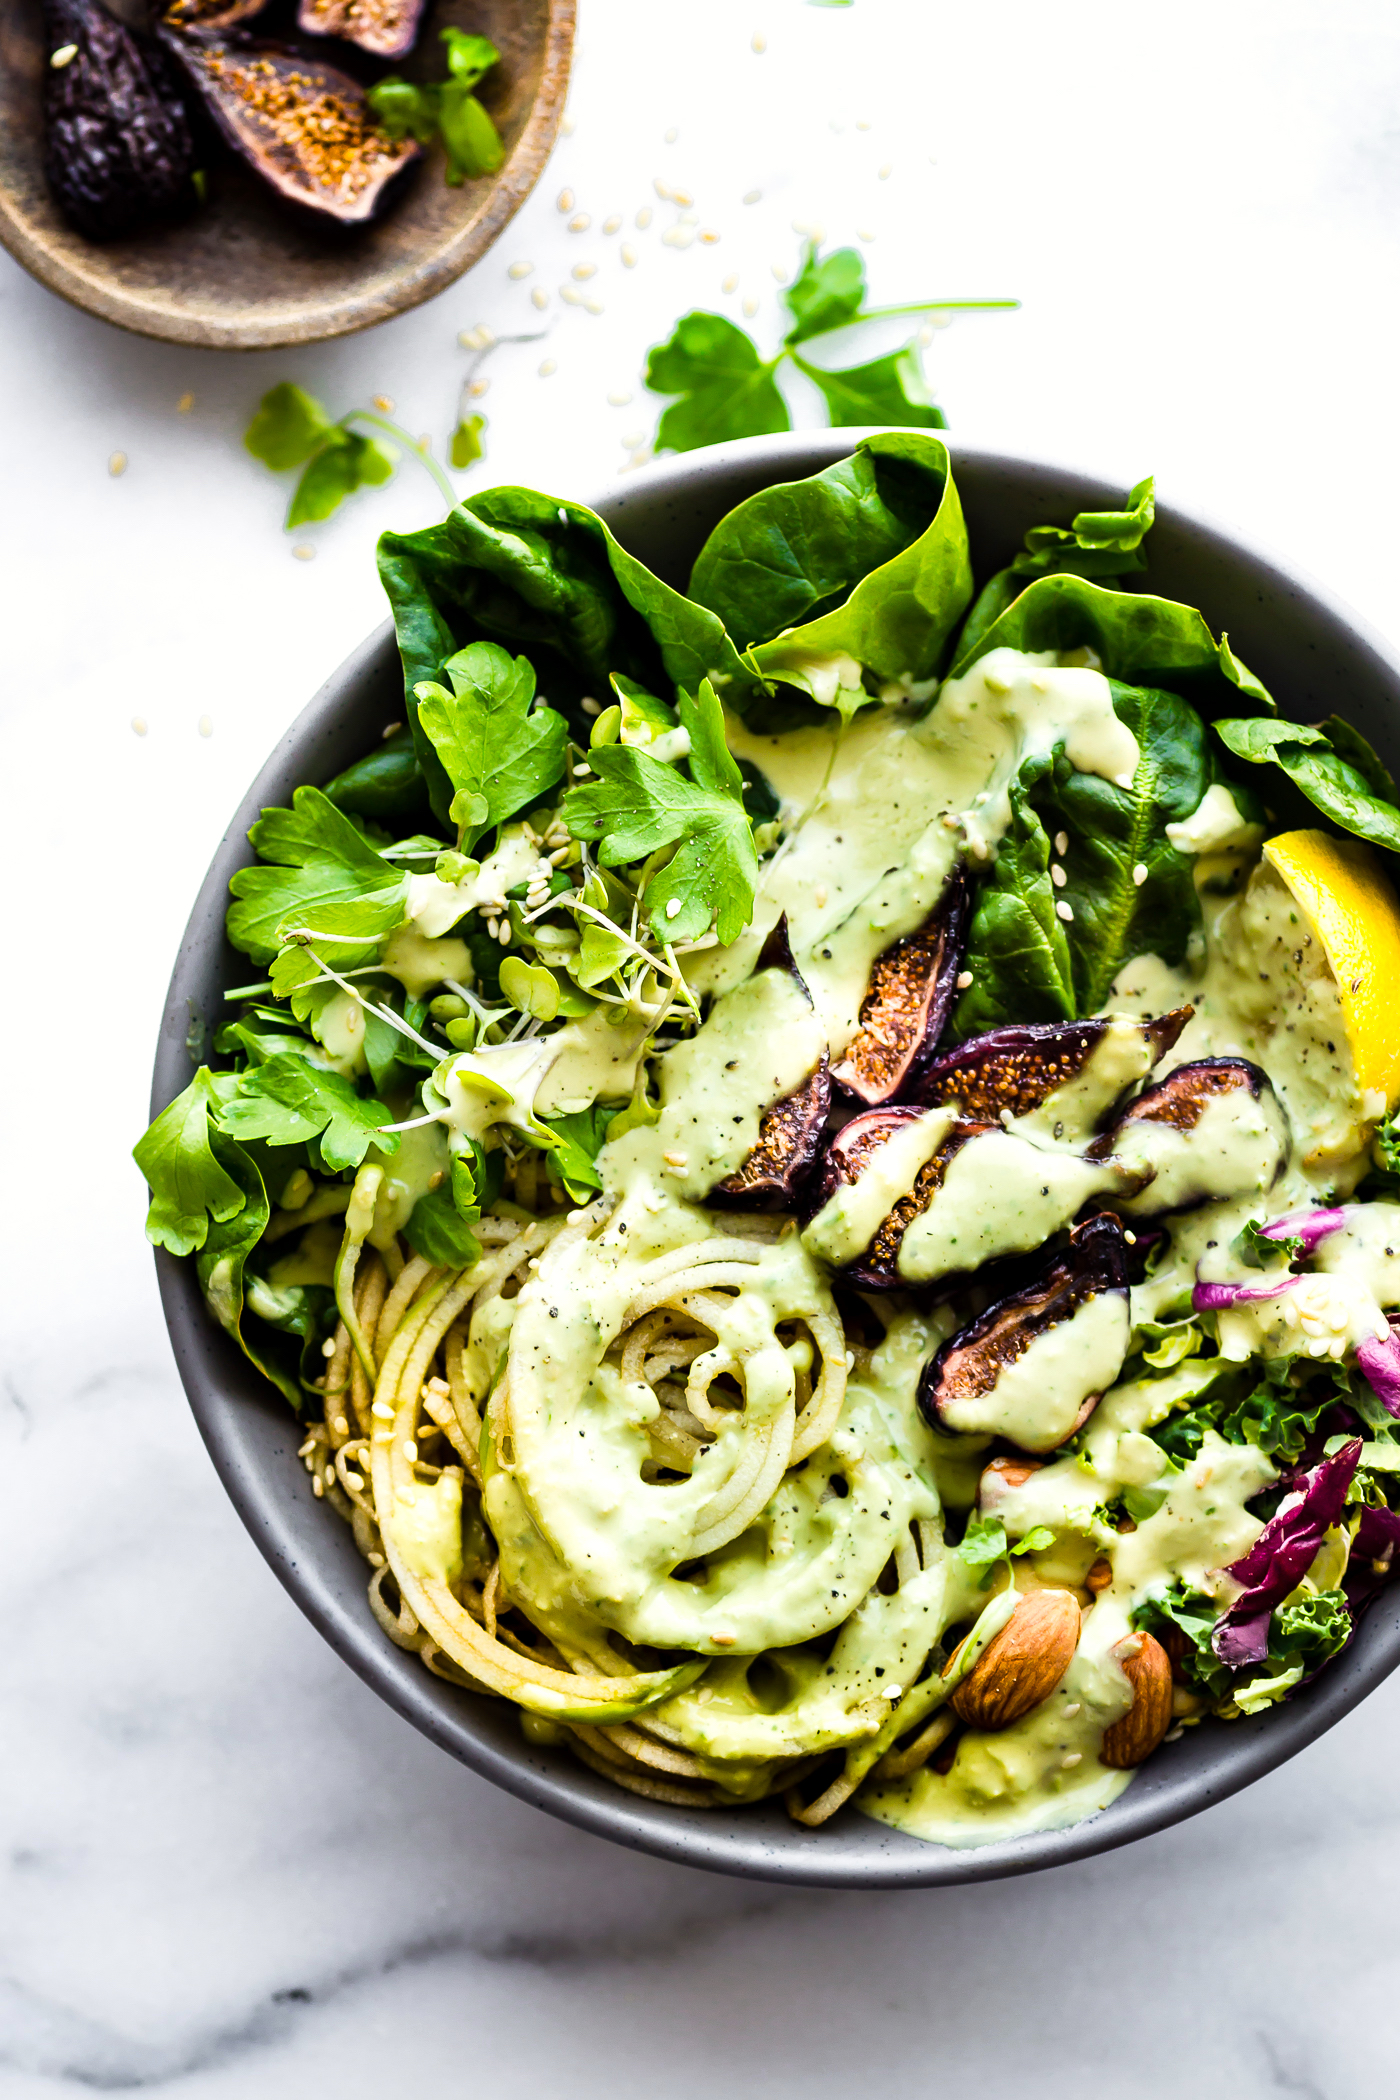 healthy salad topped with green goddess salad dressing